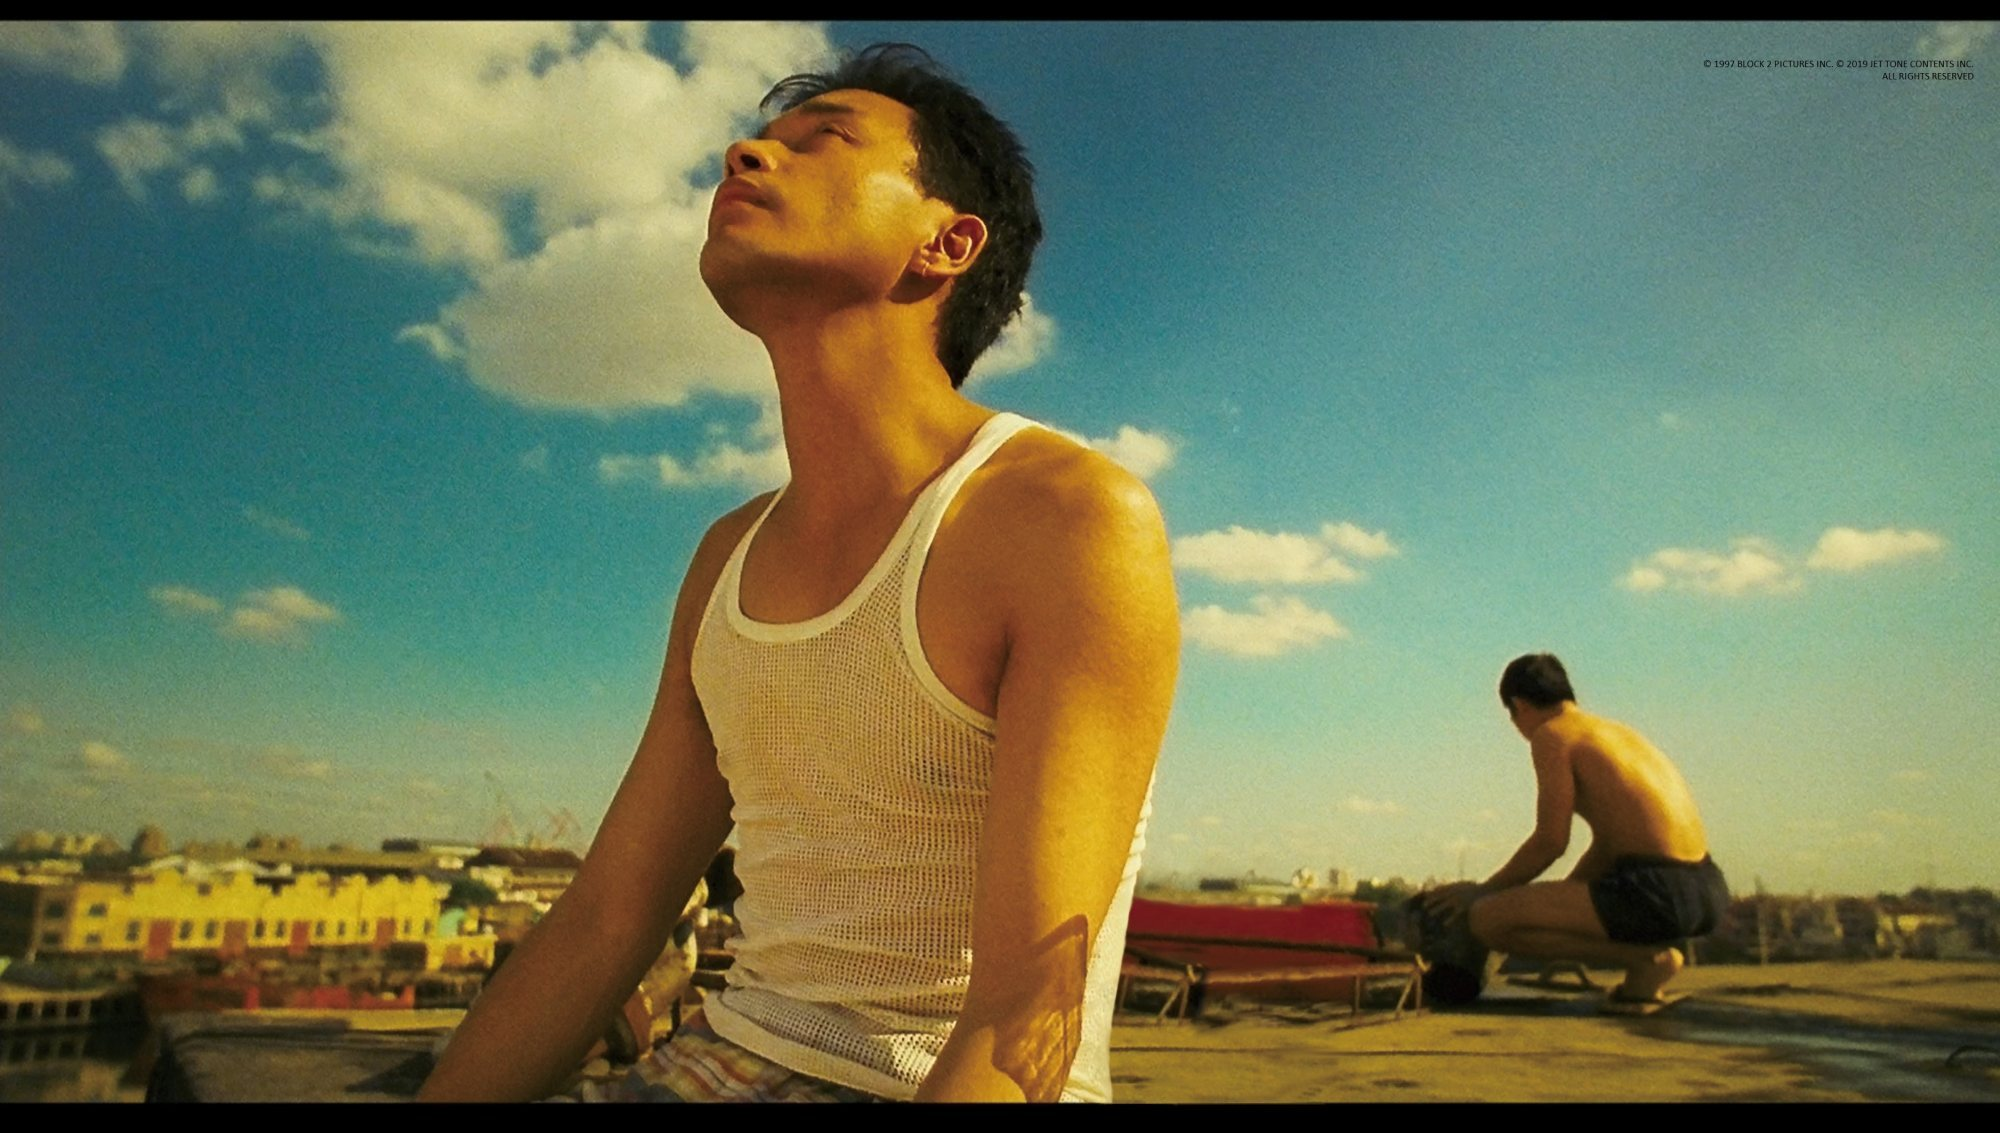 Leslie Cheung and Tony Leung Chiu-wai starred in Wong Kar-wai's 'Happy Together,' which is considered a landmark LGBTQ movie. Photo: Block 2 Pictures and Jet Tone Contents